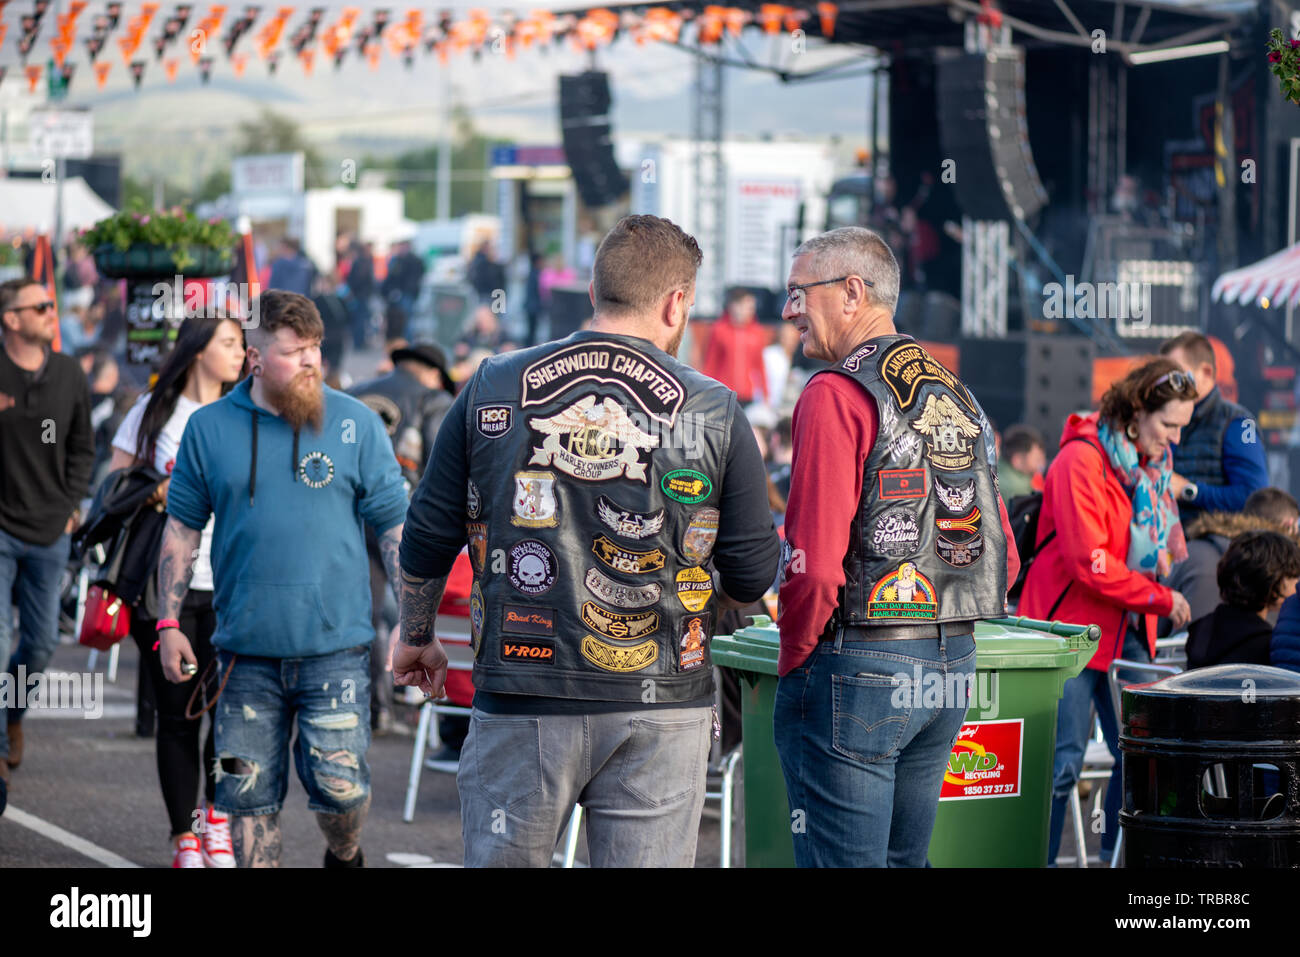 Motorcycle Chapter Photos & Motorcycle Chapter Images - Alamy